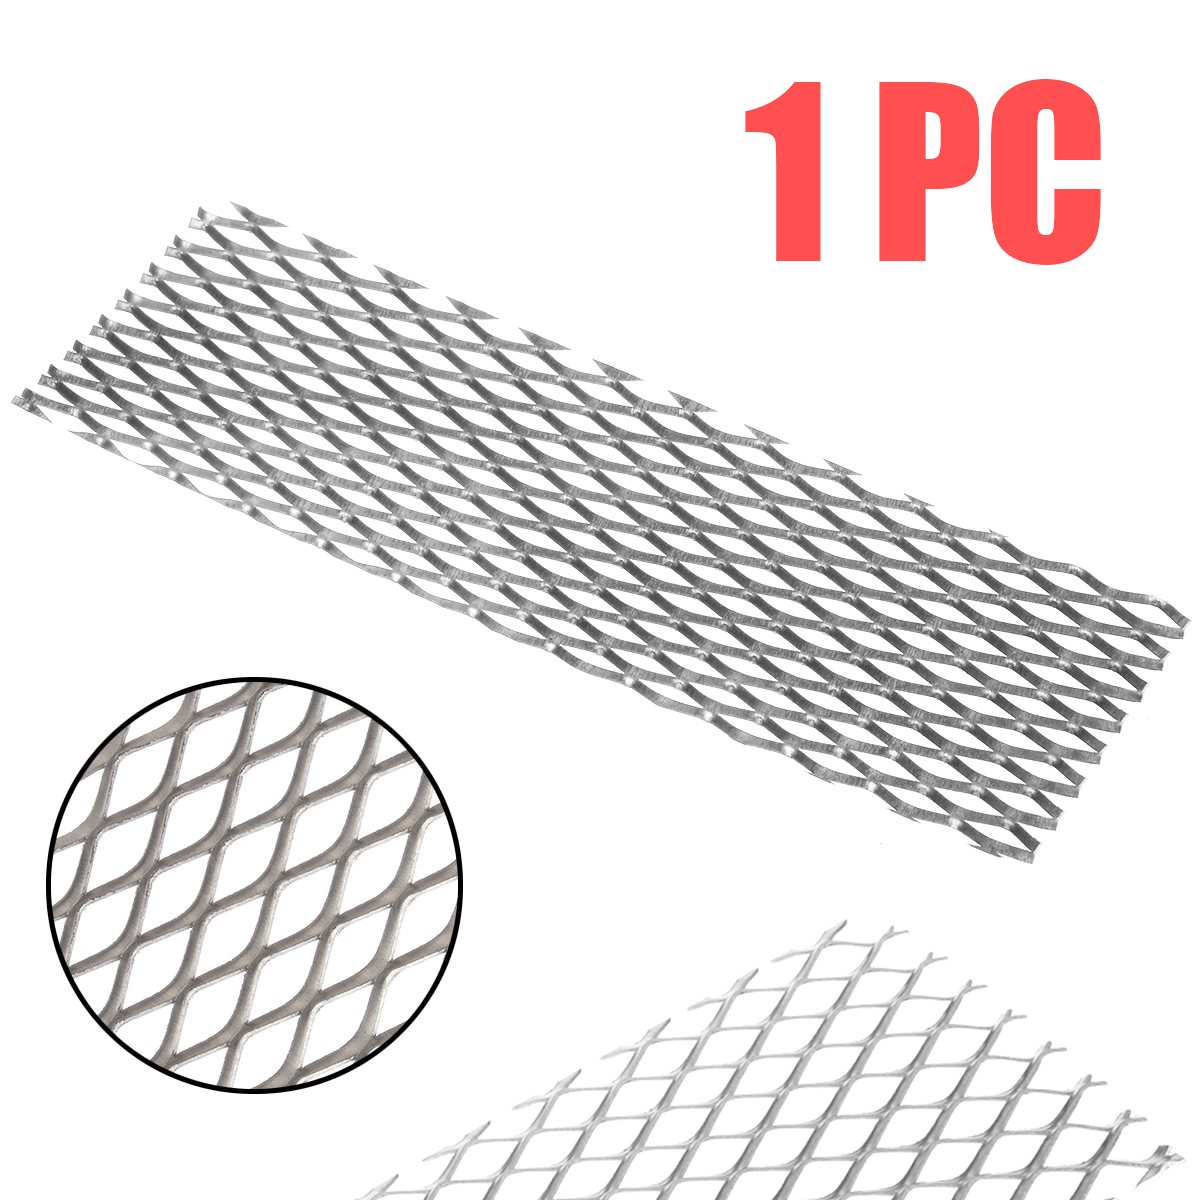 1pc Electrode Pure Titanium Mesh Sheet Recycled Metal Titanium Mesh Sheet For Electrolysis 0.5 Mm Thickness